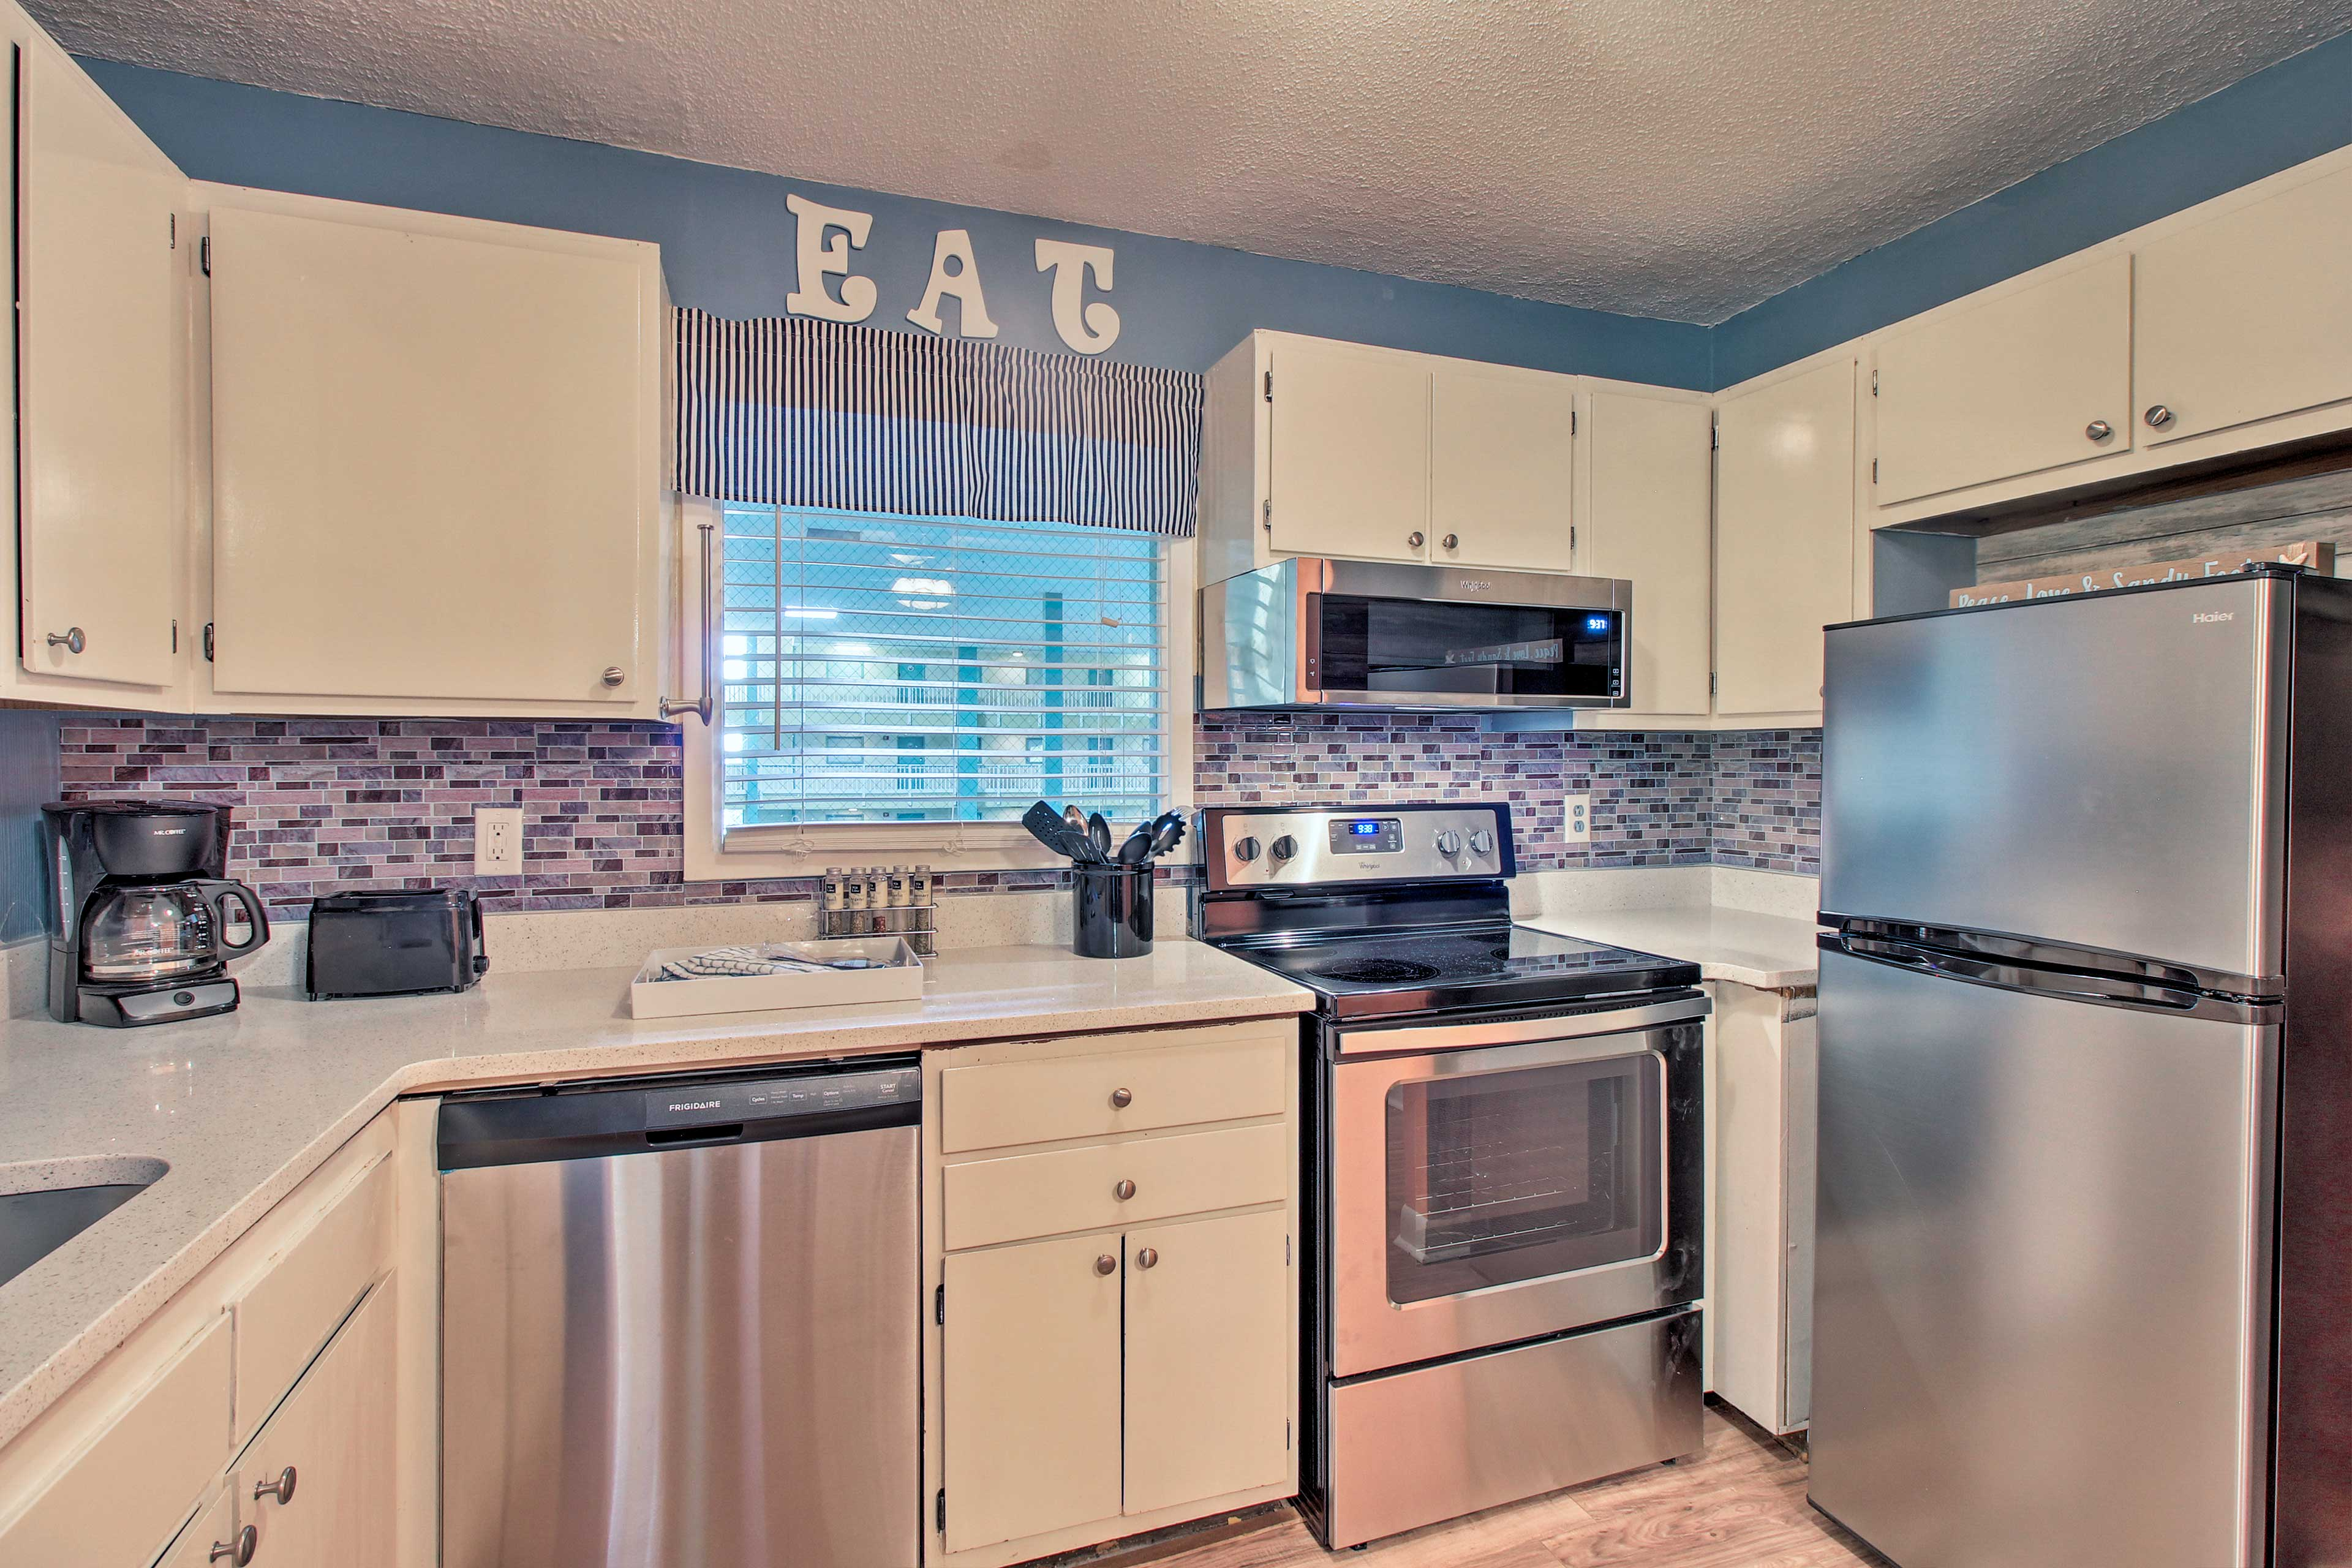 You'll have plenty of counter space to utilize in the kitchen.